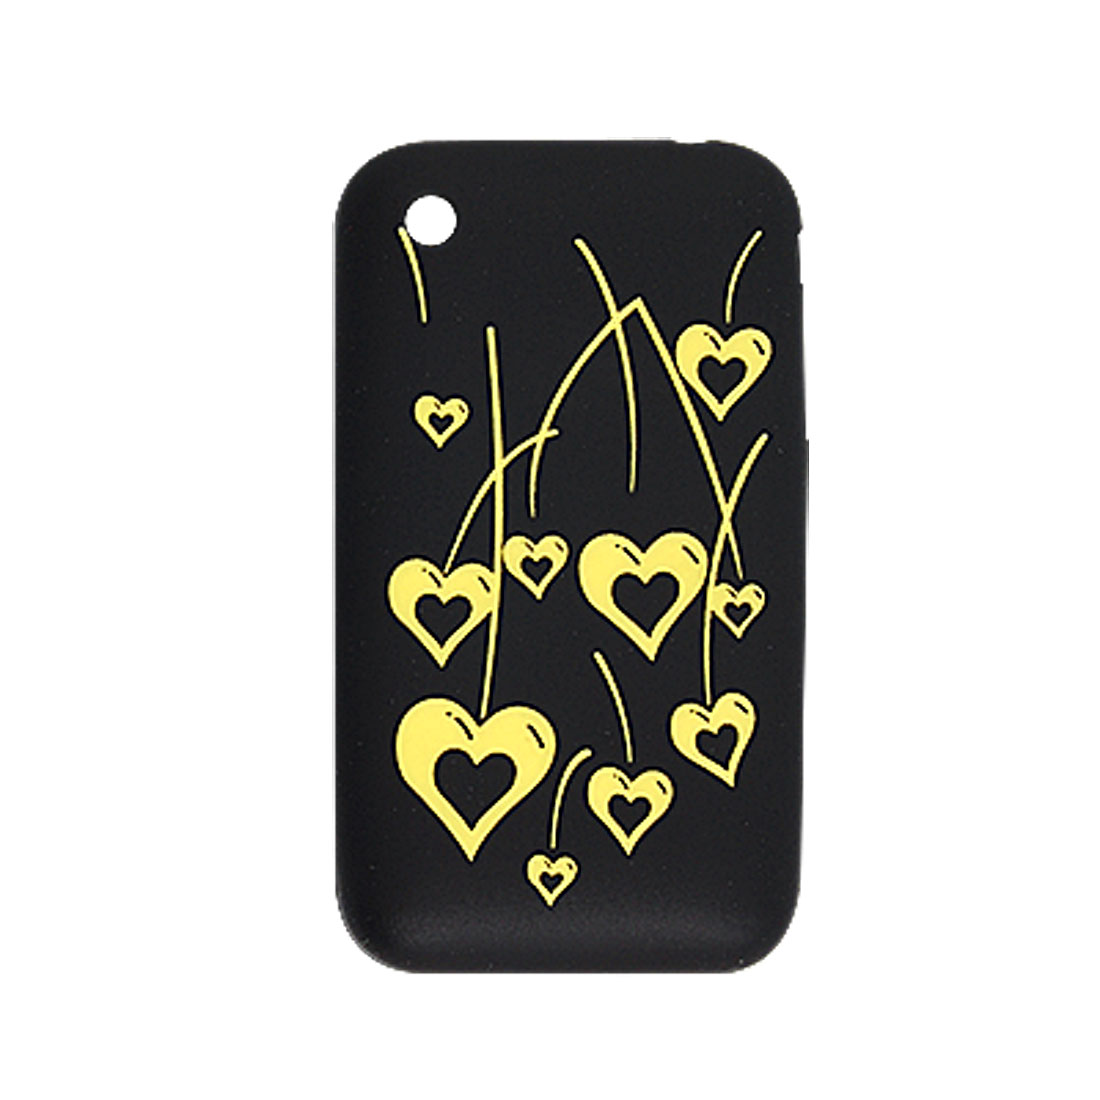 Black Silicone Yellow Cut Hearts Pattern Case for iPhone 3G